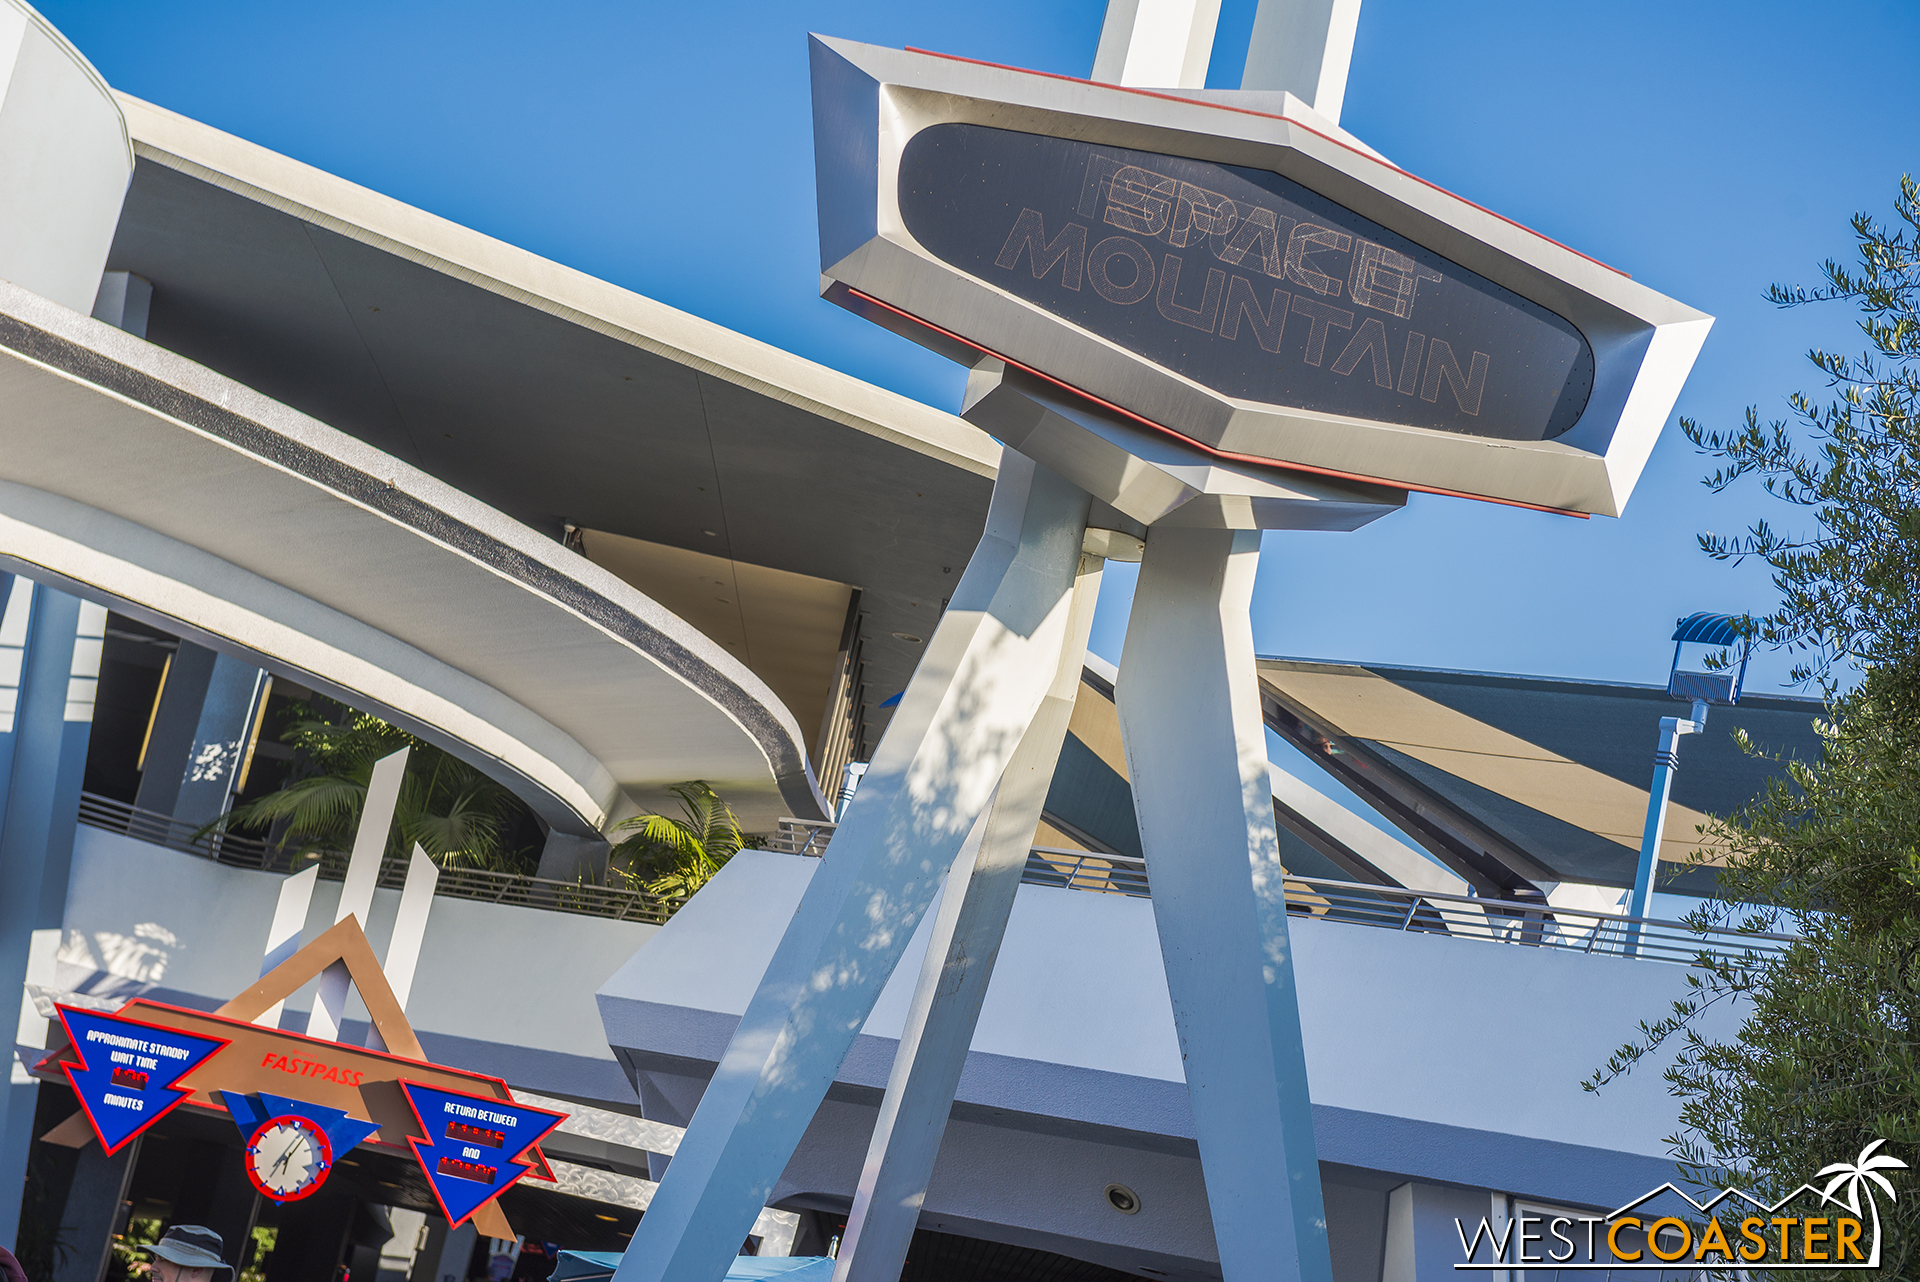 Regular Space Mountain was super popular on Friday.